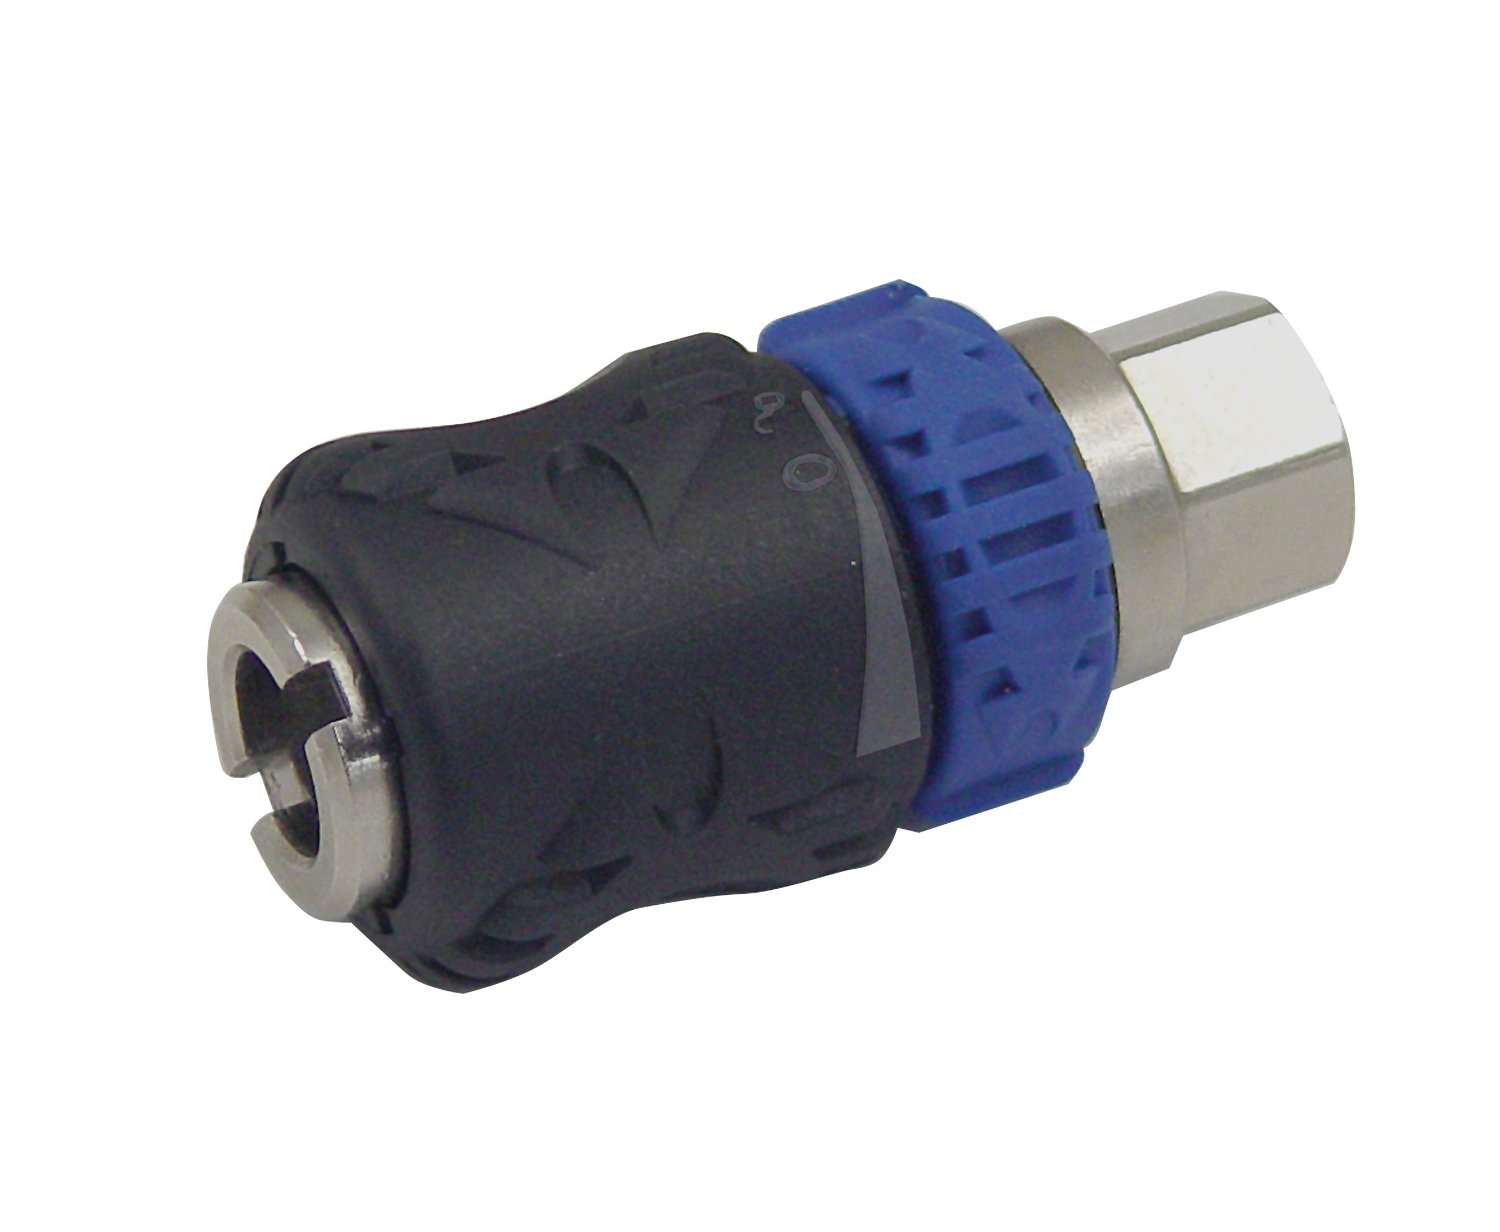 Astro 2640 Universal Quick Coupler with Safety Lock Air Regulator and Pressure Release